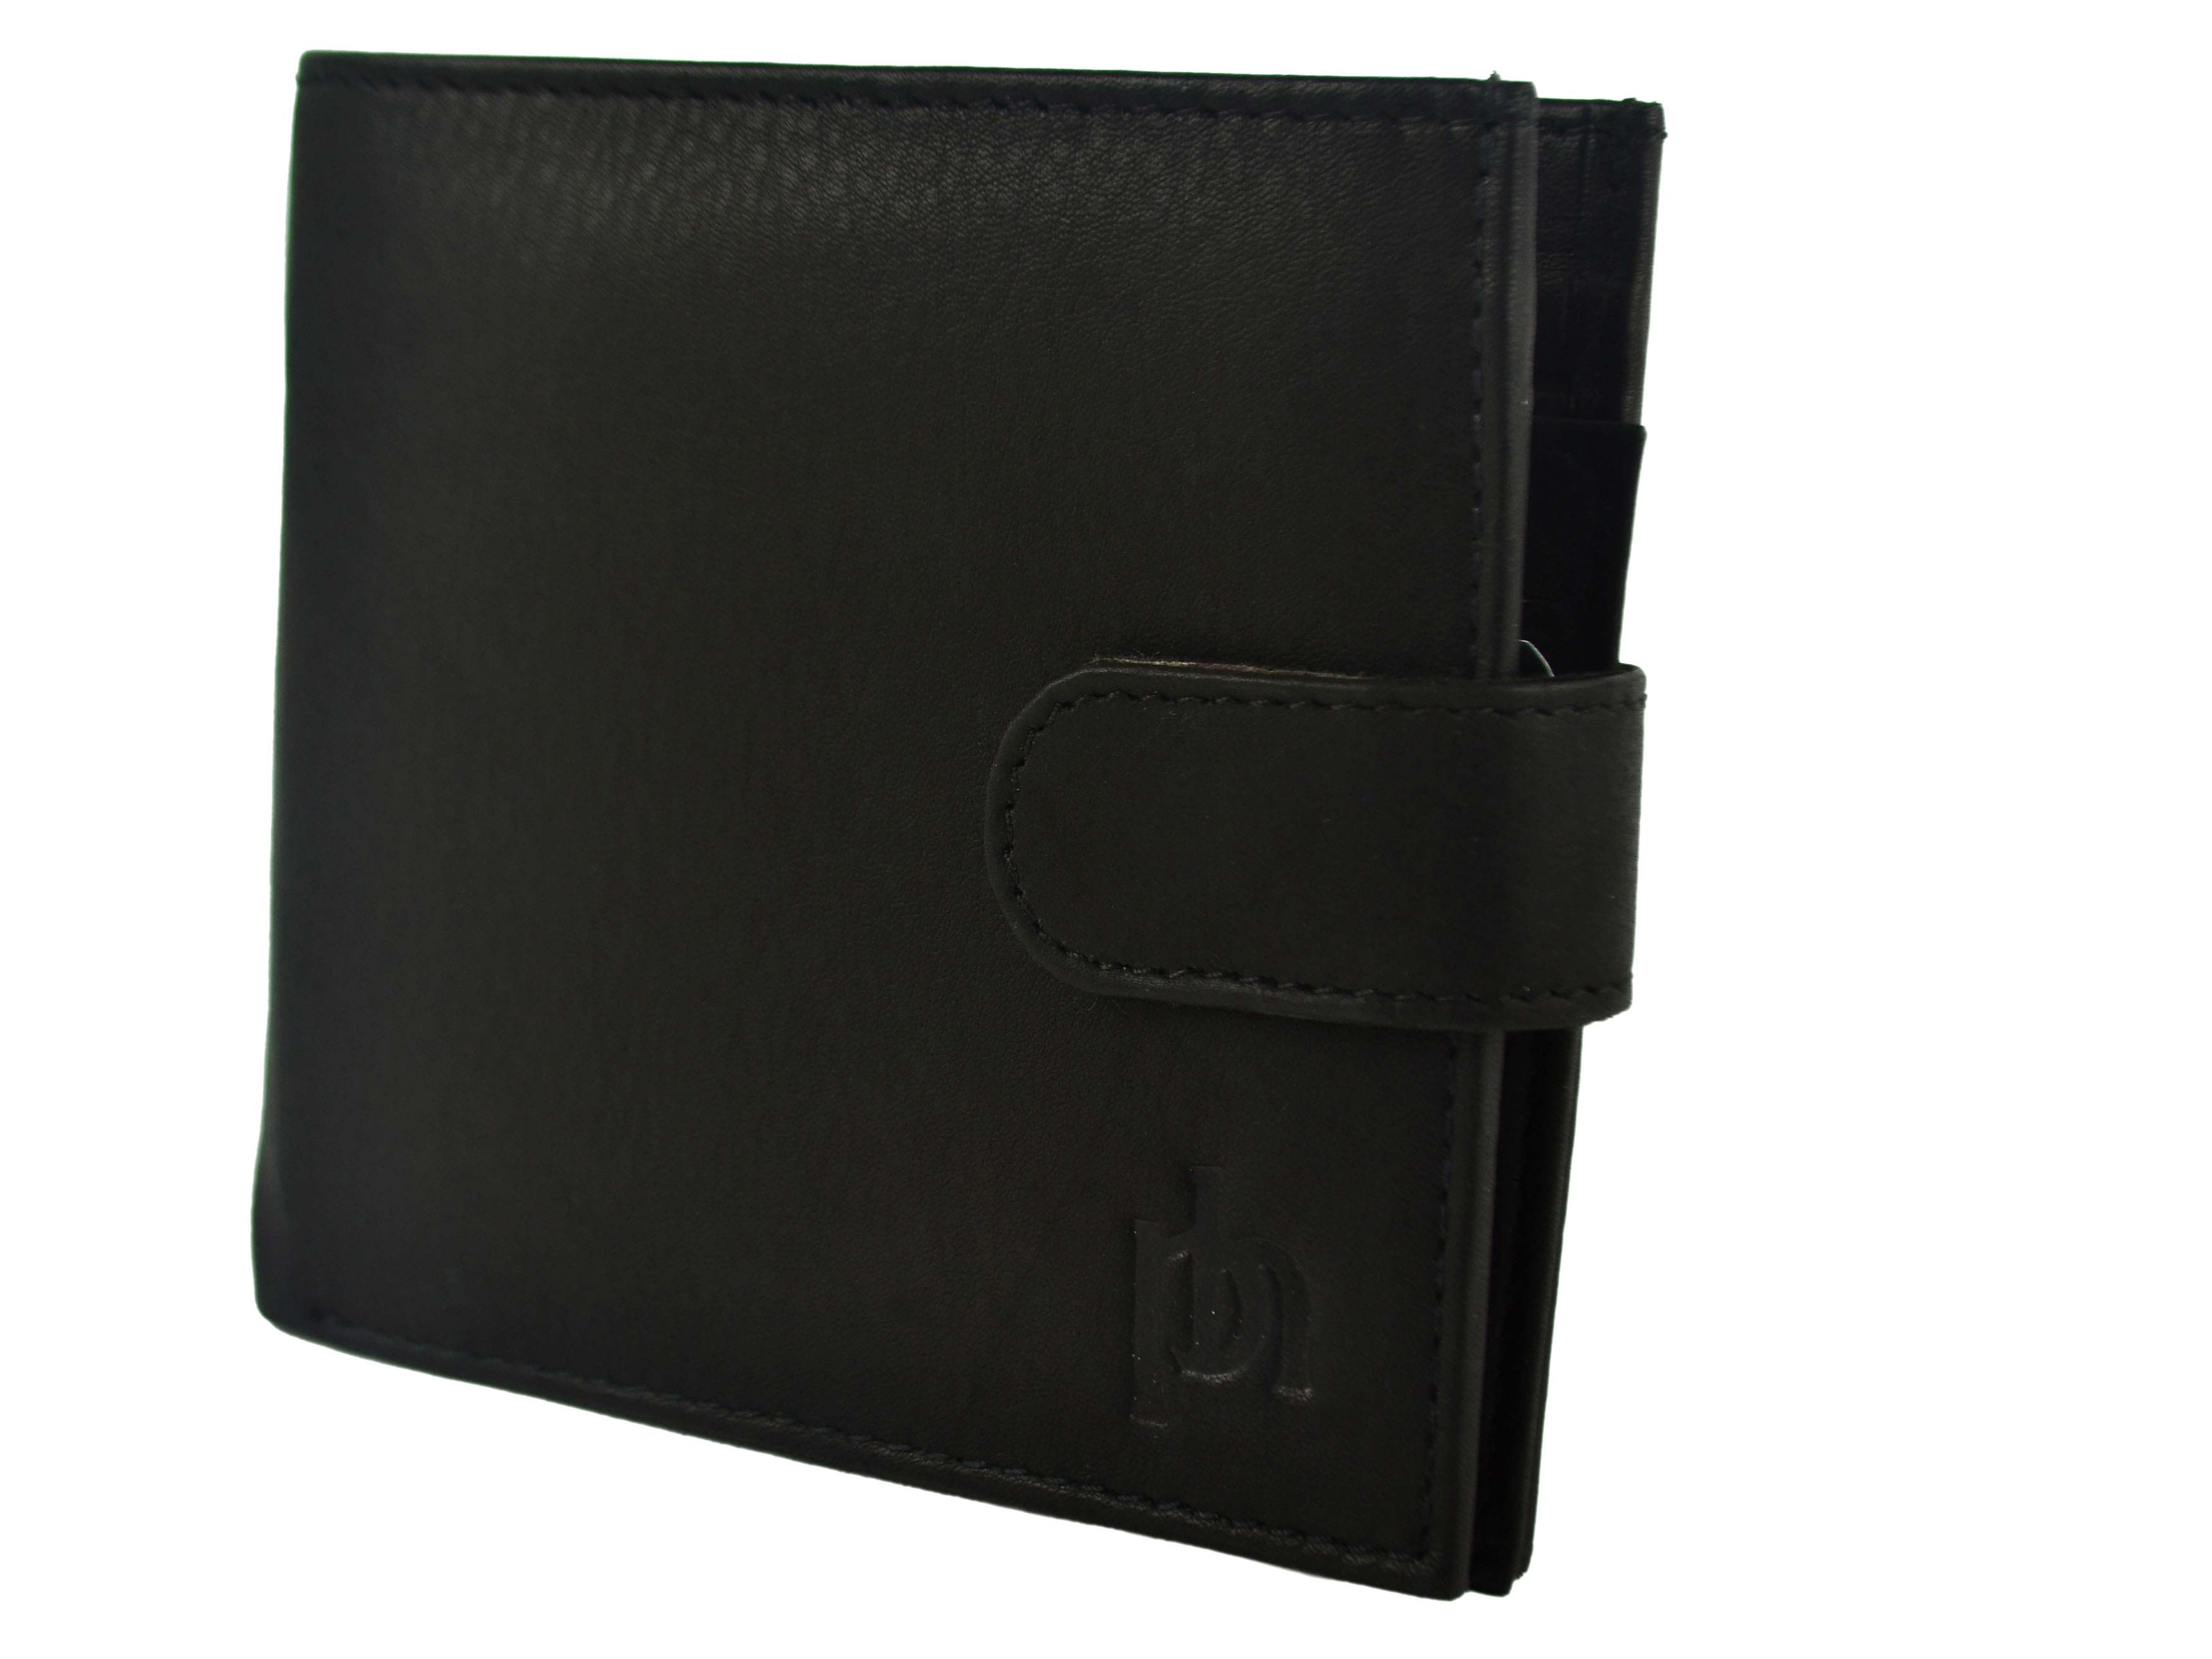 Mens-Quality-Soft-Leather-Wallet-by-Prime-Hide-Gift-Boxed-Stylish-with-Tab thumbnail 4